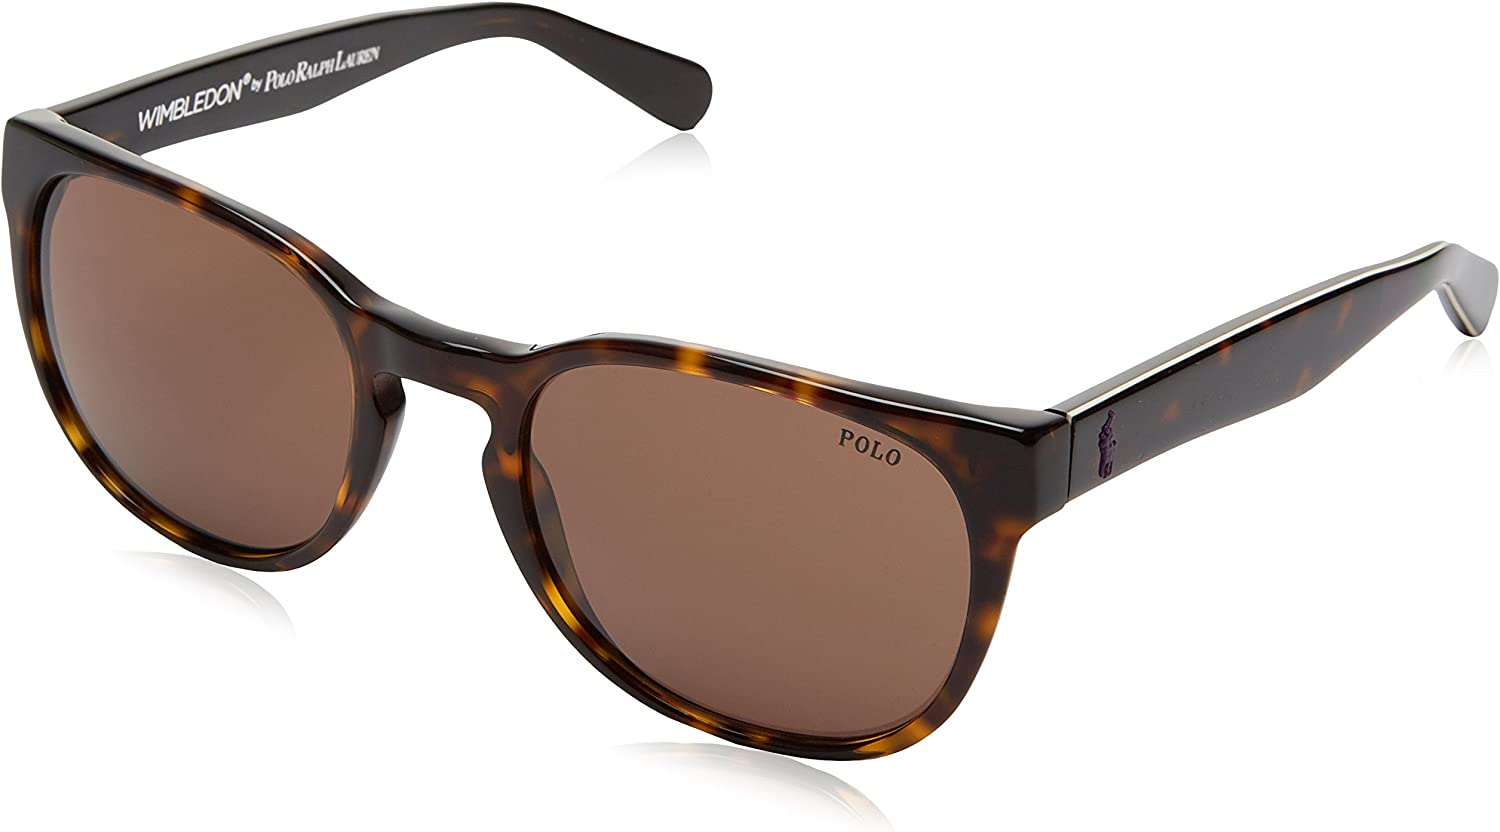 Ralph Lauren POLO 0PH4099 Gafas de sol, Shiny Dark Havana, 52 para ...